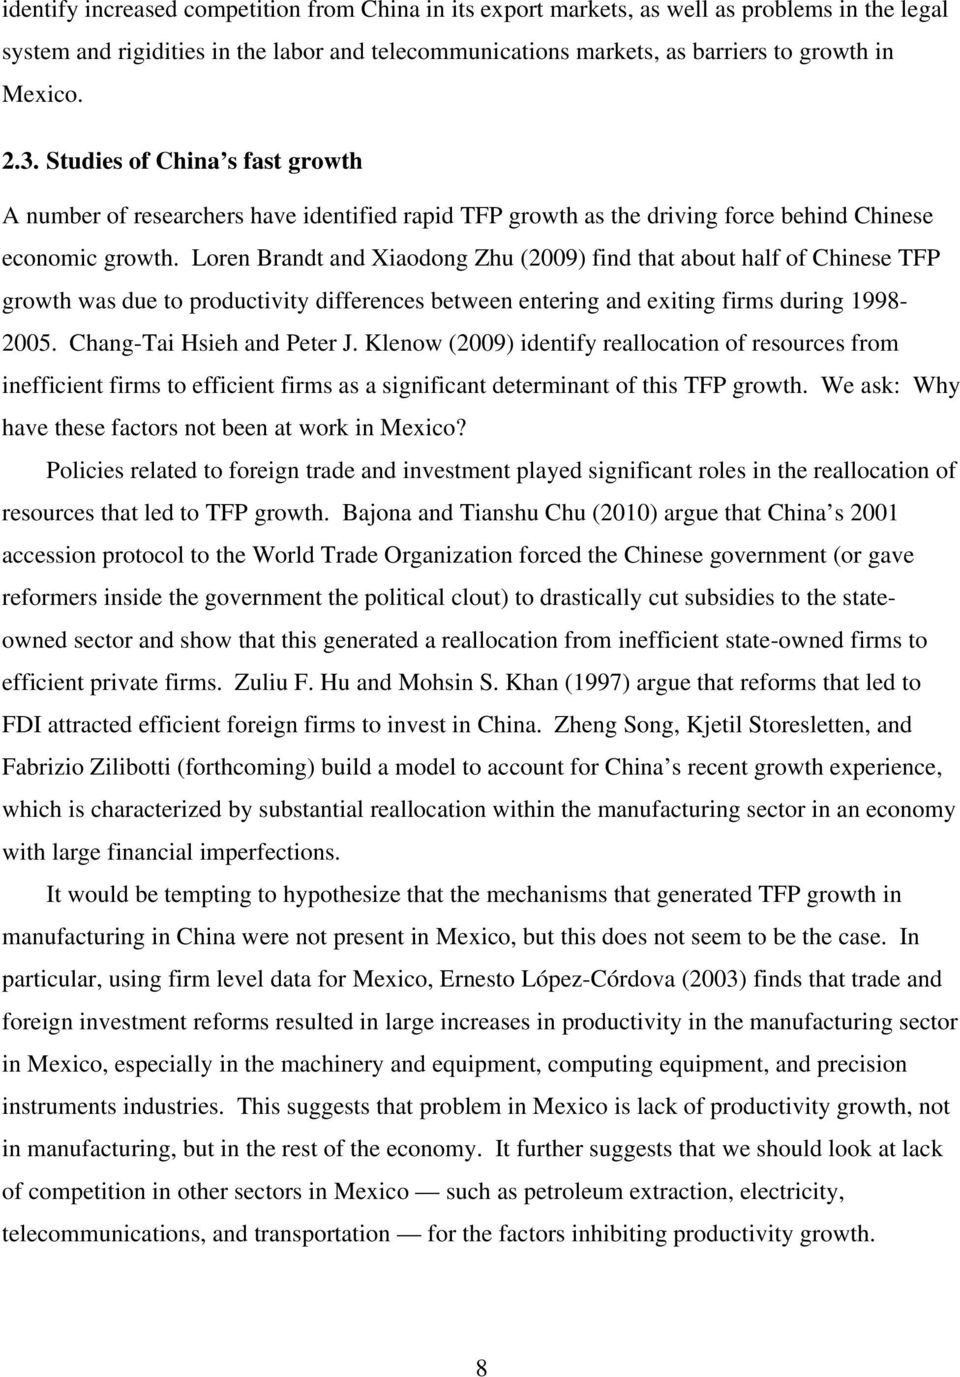 Loren Brand and Xiaodong Zhu (2009) find ha abou half of Chinese TFP growh was due o produciviy differences beween enering and exiing firms during 1998-2005. Chang-Tai Hsieh and Peer J.